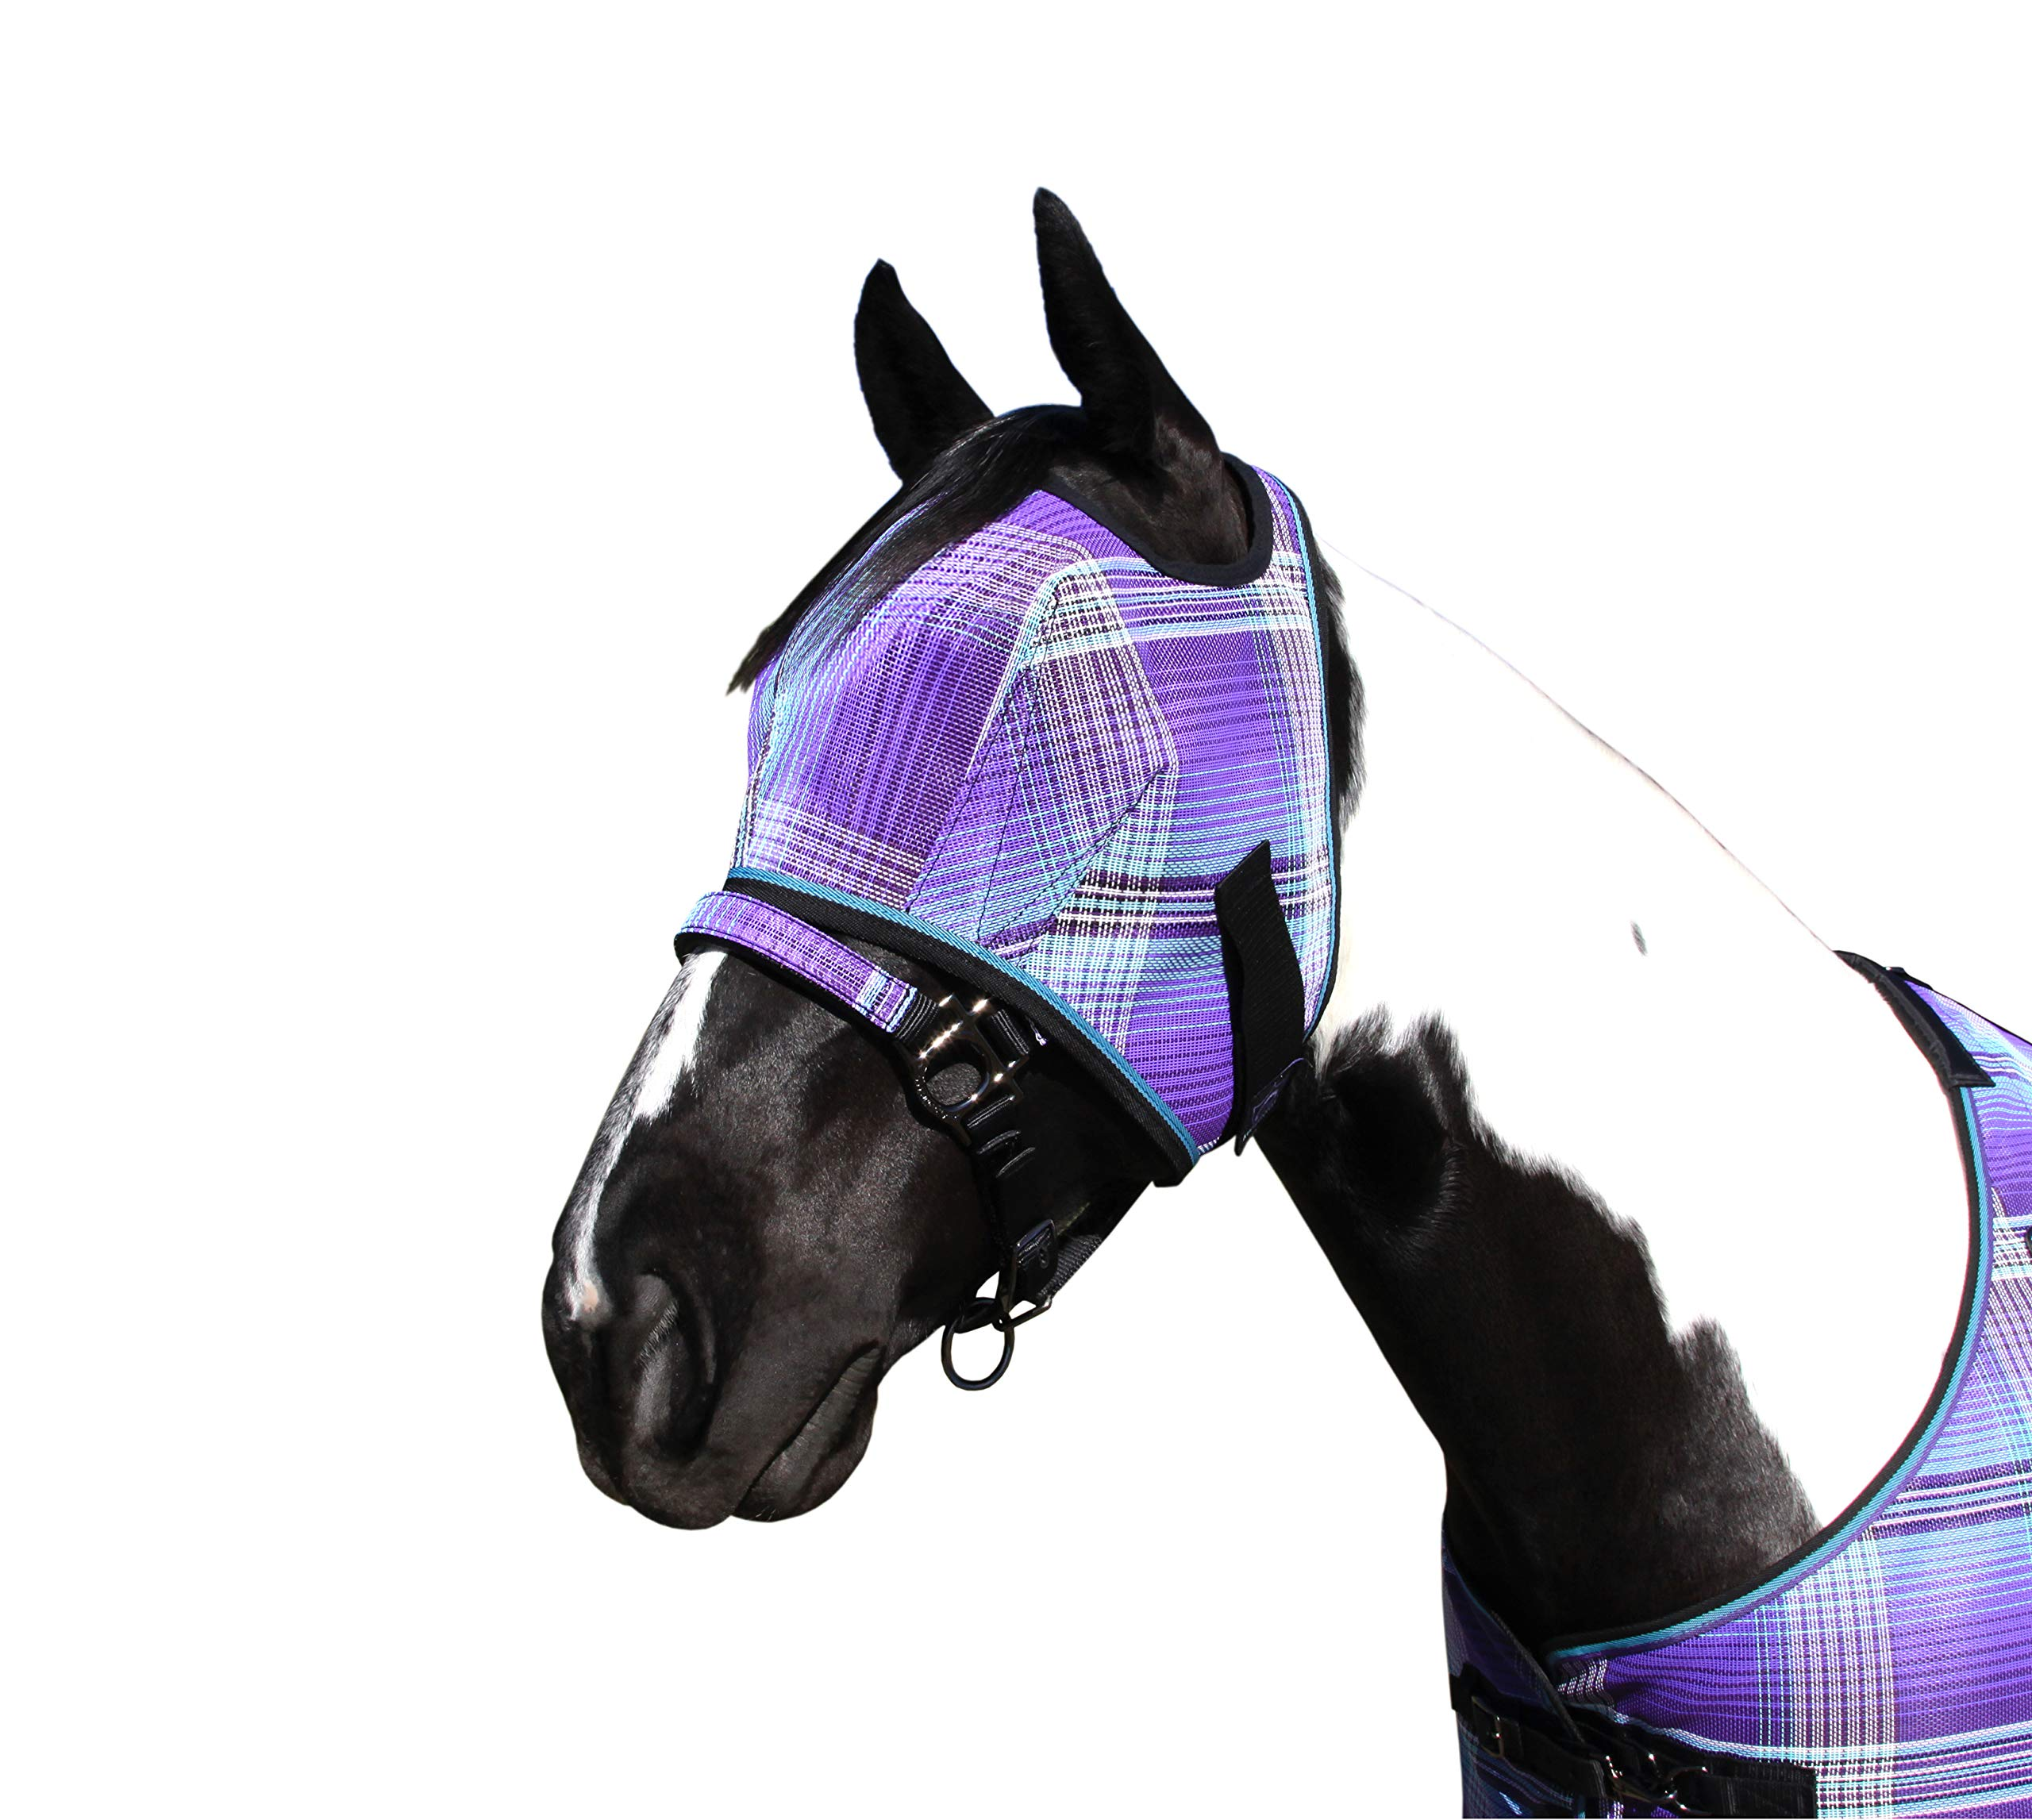 Kensington Fly Mask Web Trim - Protects Horses Face and Eyes from Biting Insects and UV Rays While Allowing Full Visibility - Ears and Forelock Able to Come Through The Mask (XX-Large, Lavender Mint) by Kensington Protective Products